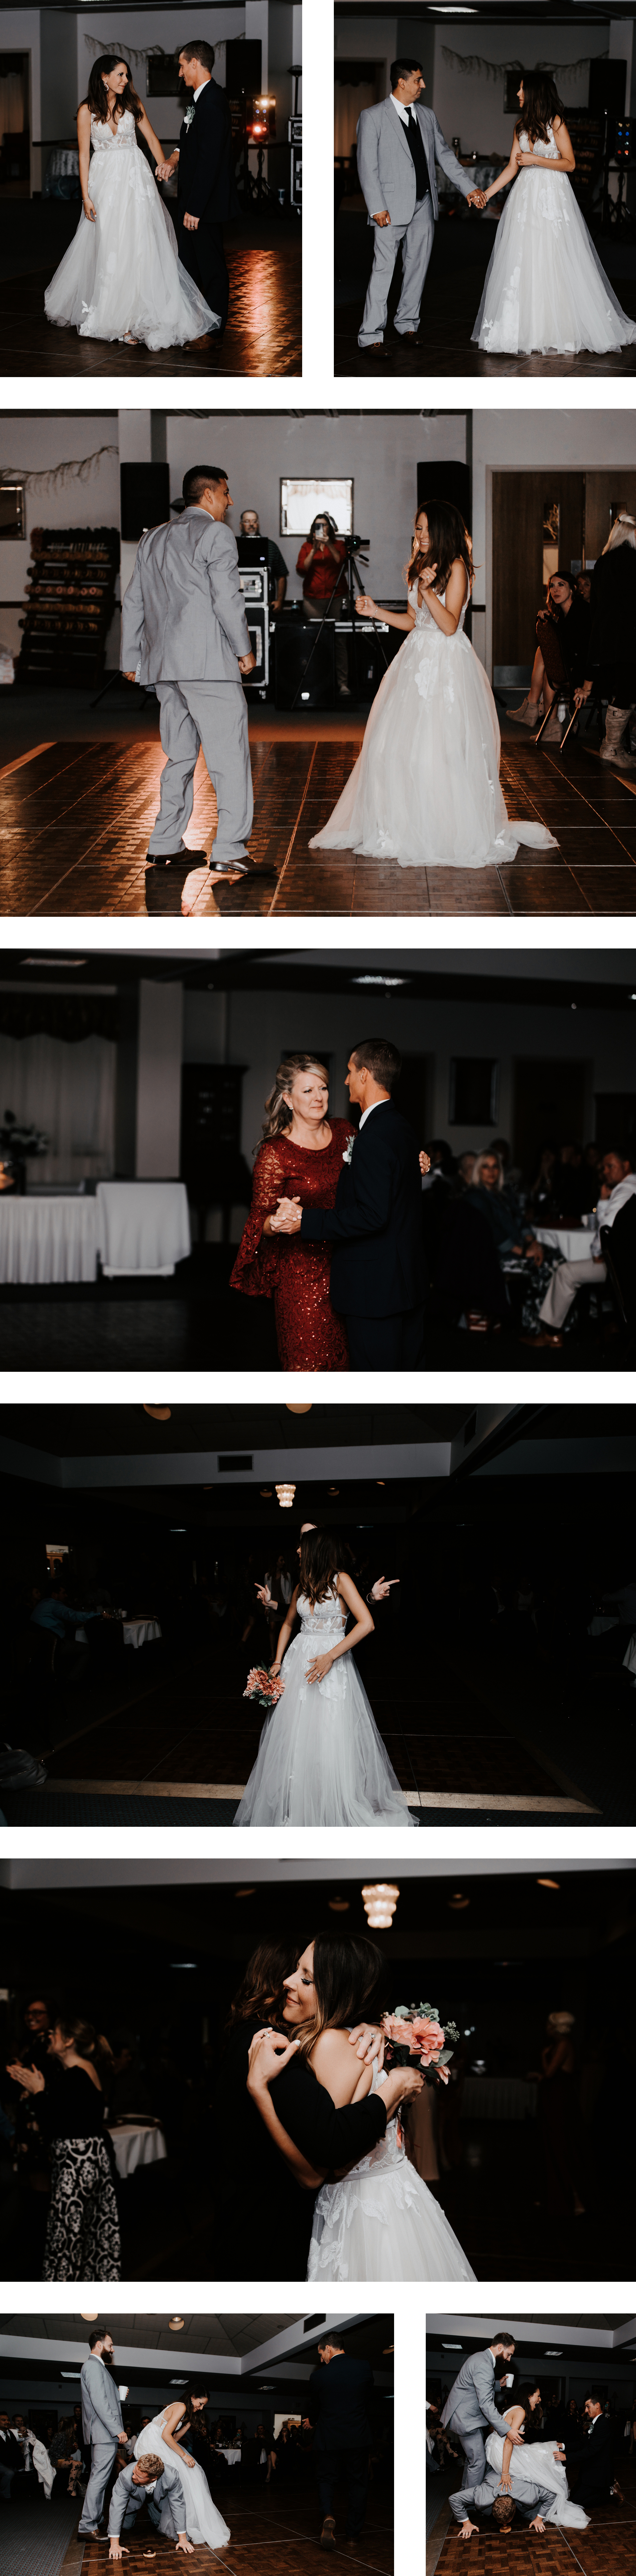 The Pollack Wedding 22.jpg